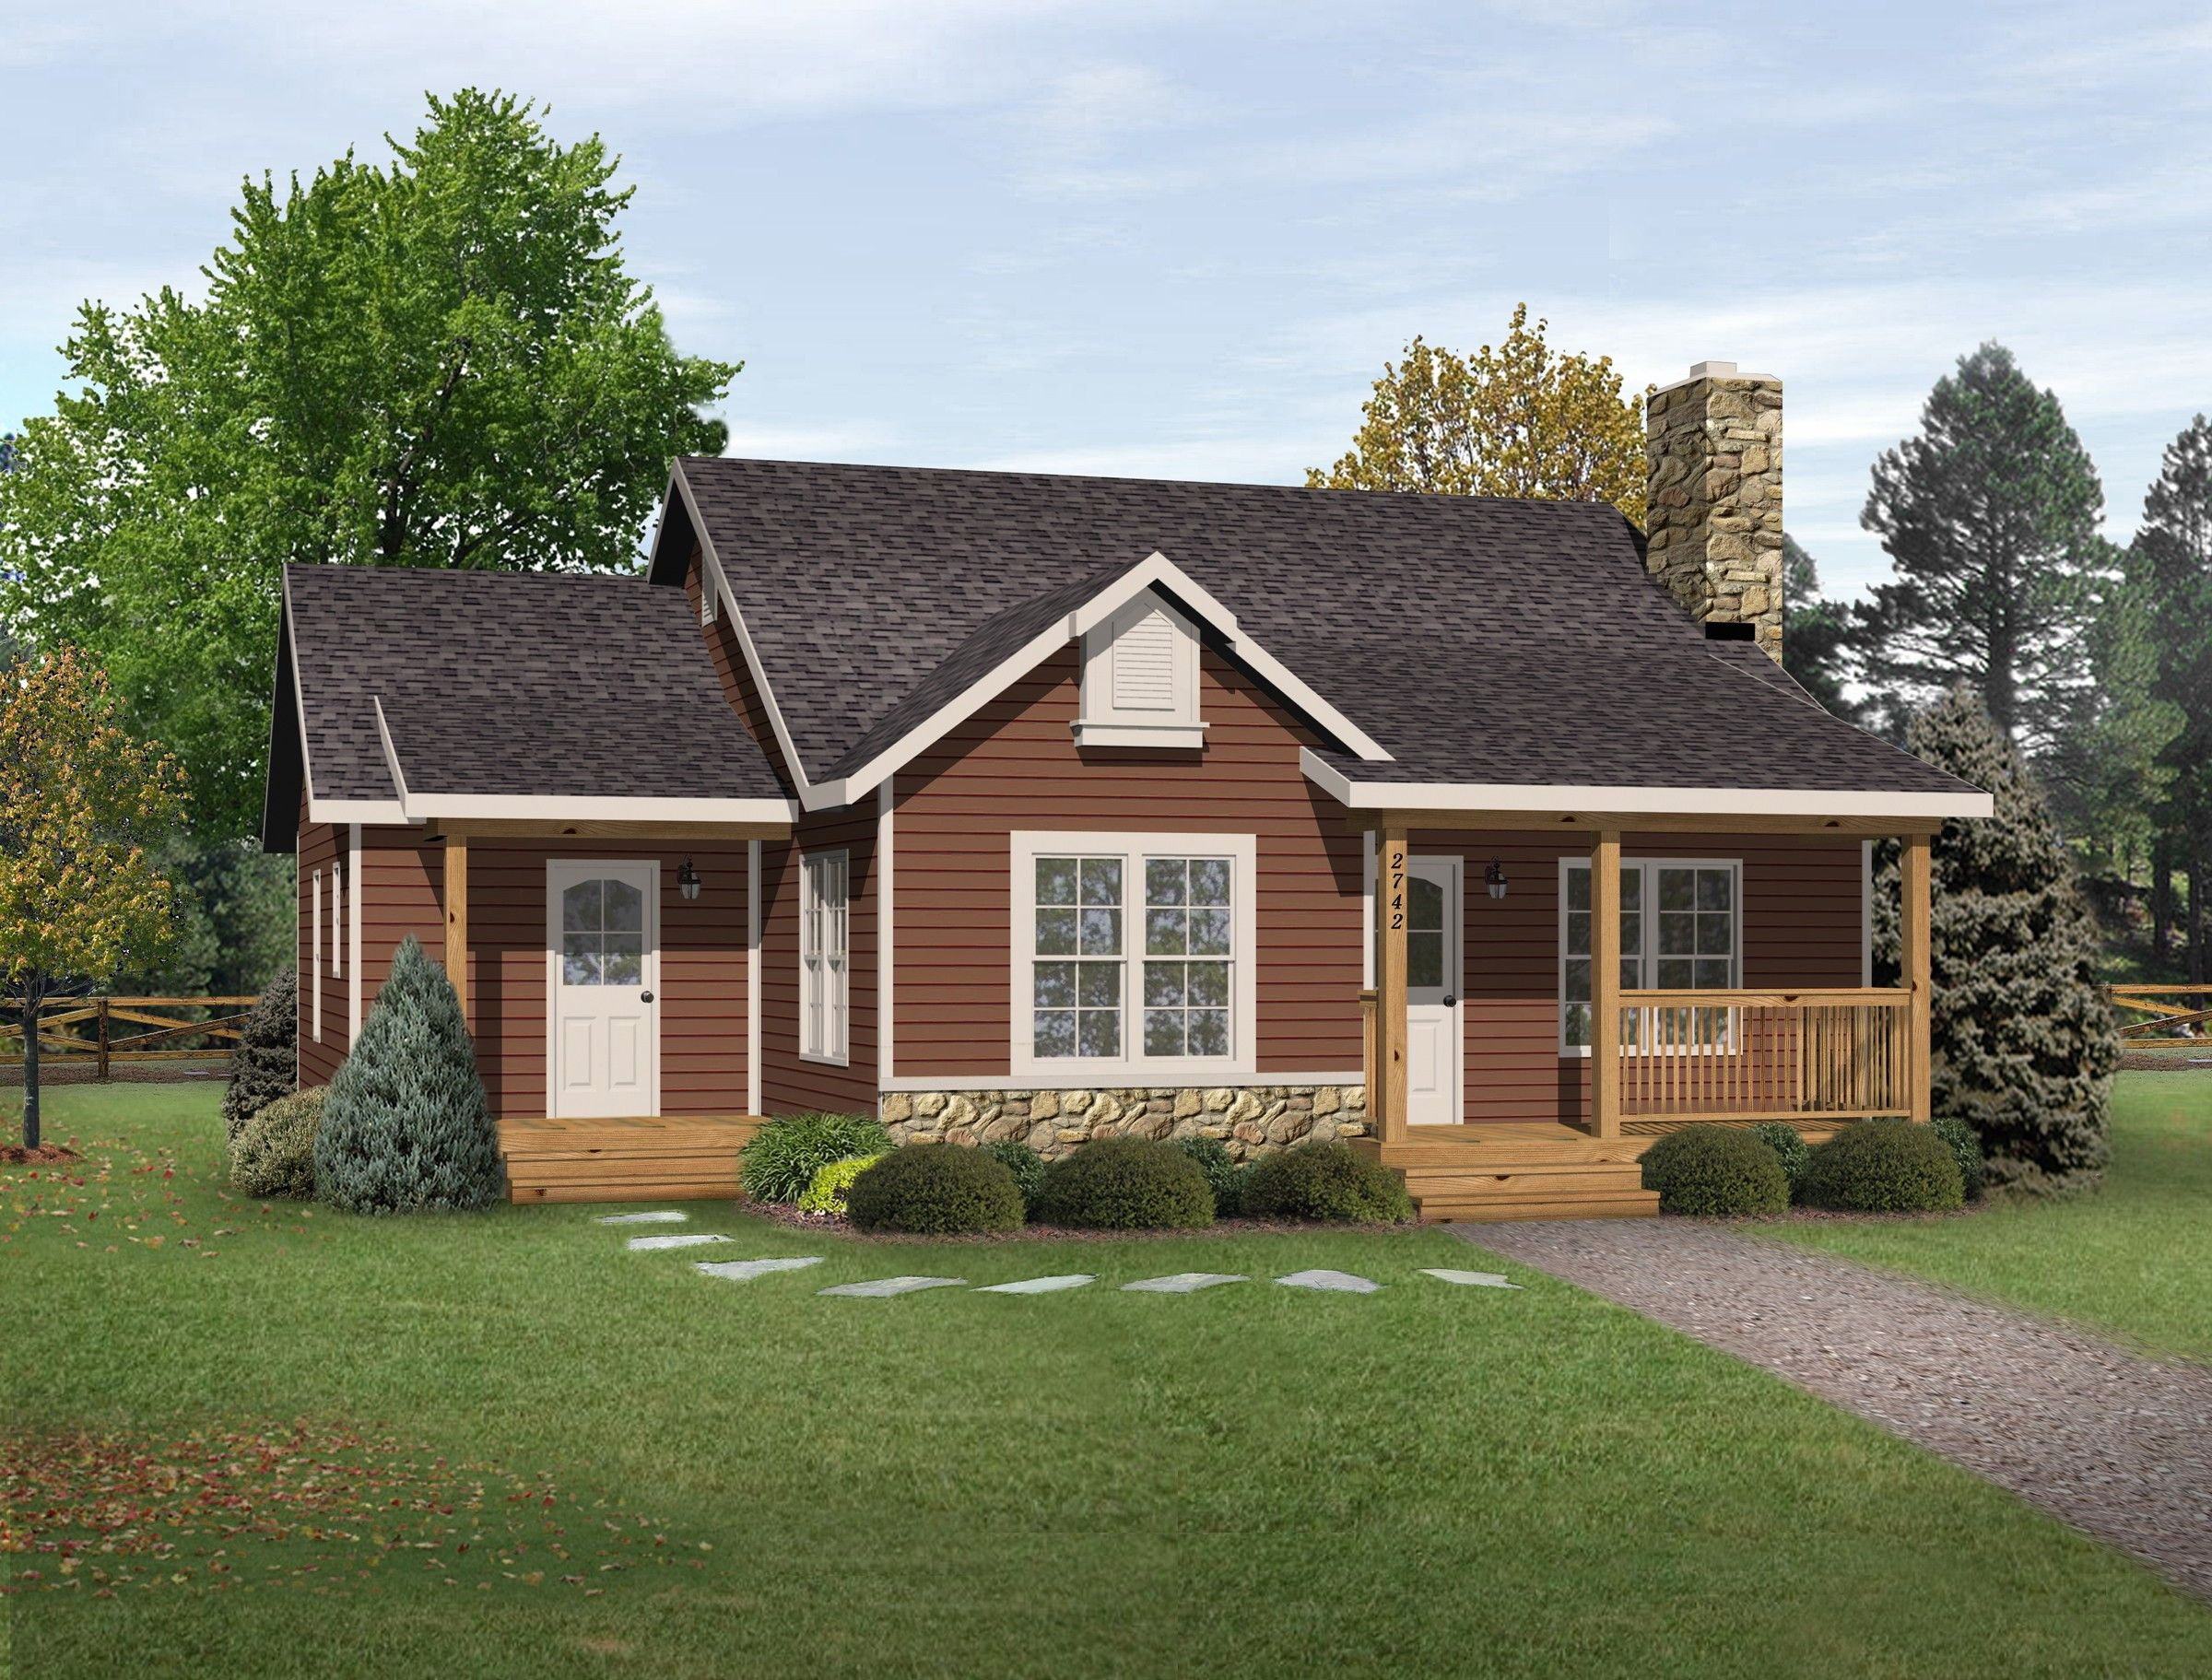 Plan 22081sl Simple Country Cottage Craftsman House Plans Ranch Style House Plans Vacation House Plans